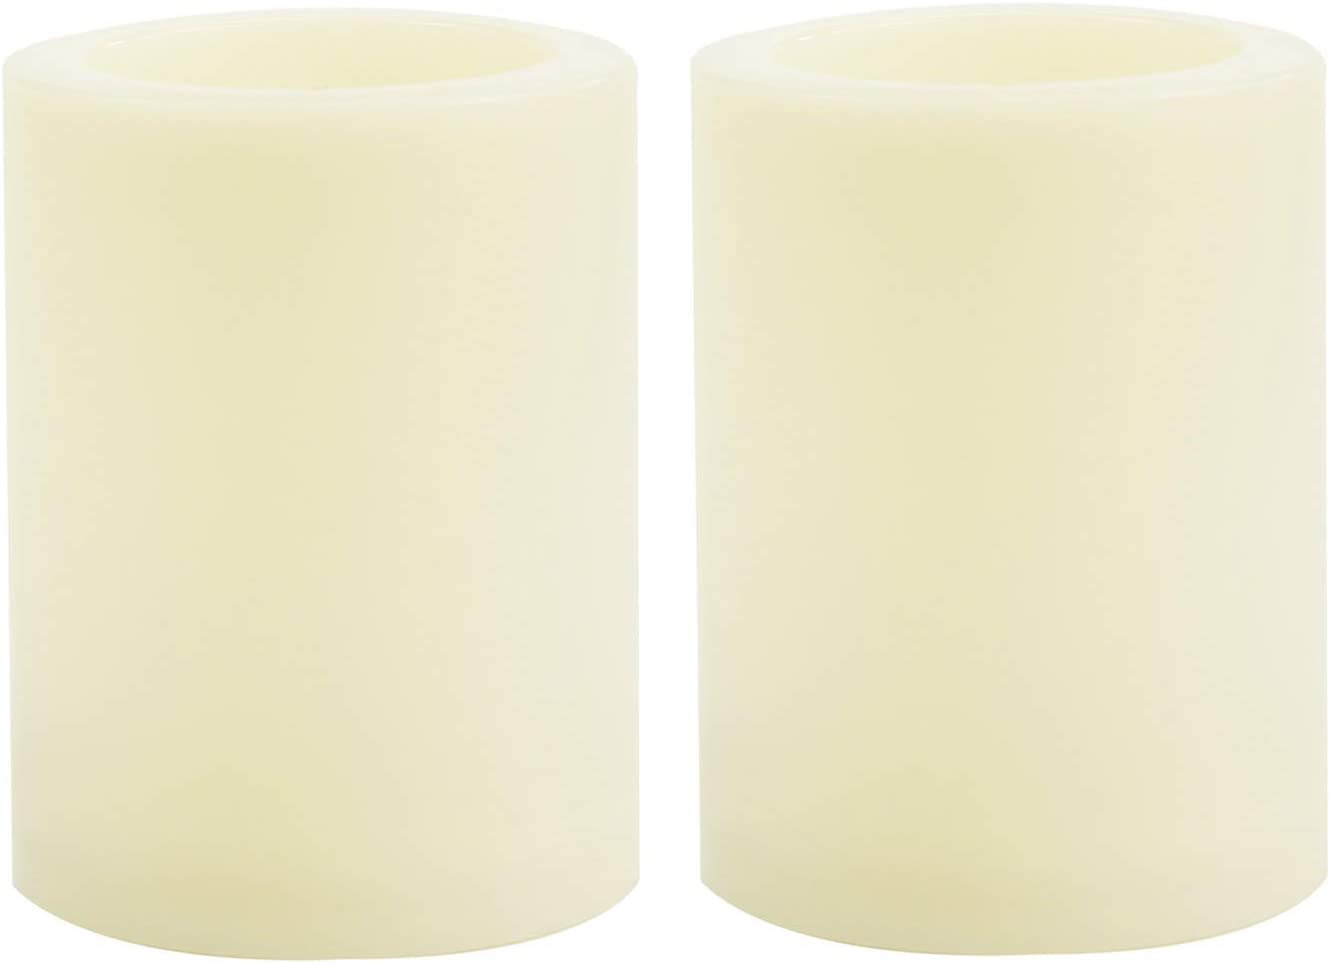 2 Pack Flameless LED Pillar Candles Waterproof Outdoor Battery Operated 6-Hours Timed Flickering Electric Fake Candle Set Bulk for Home Garden Wedding Party Christmas Decoration 3x4 inches